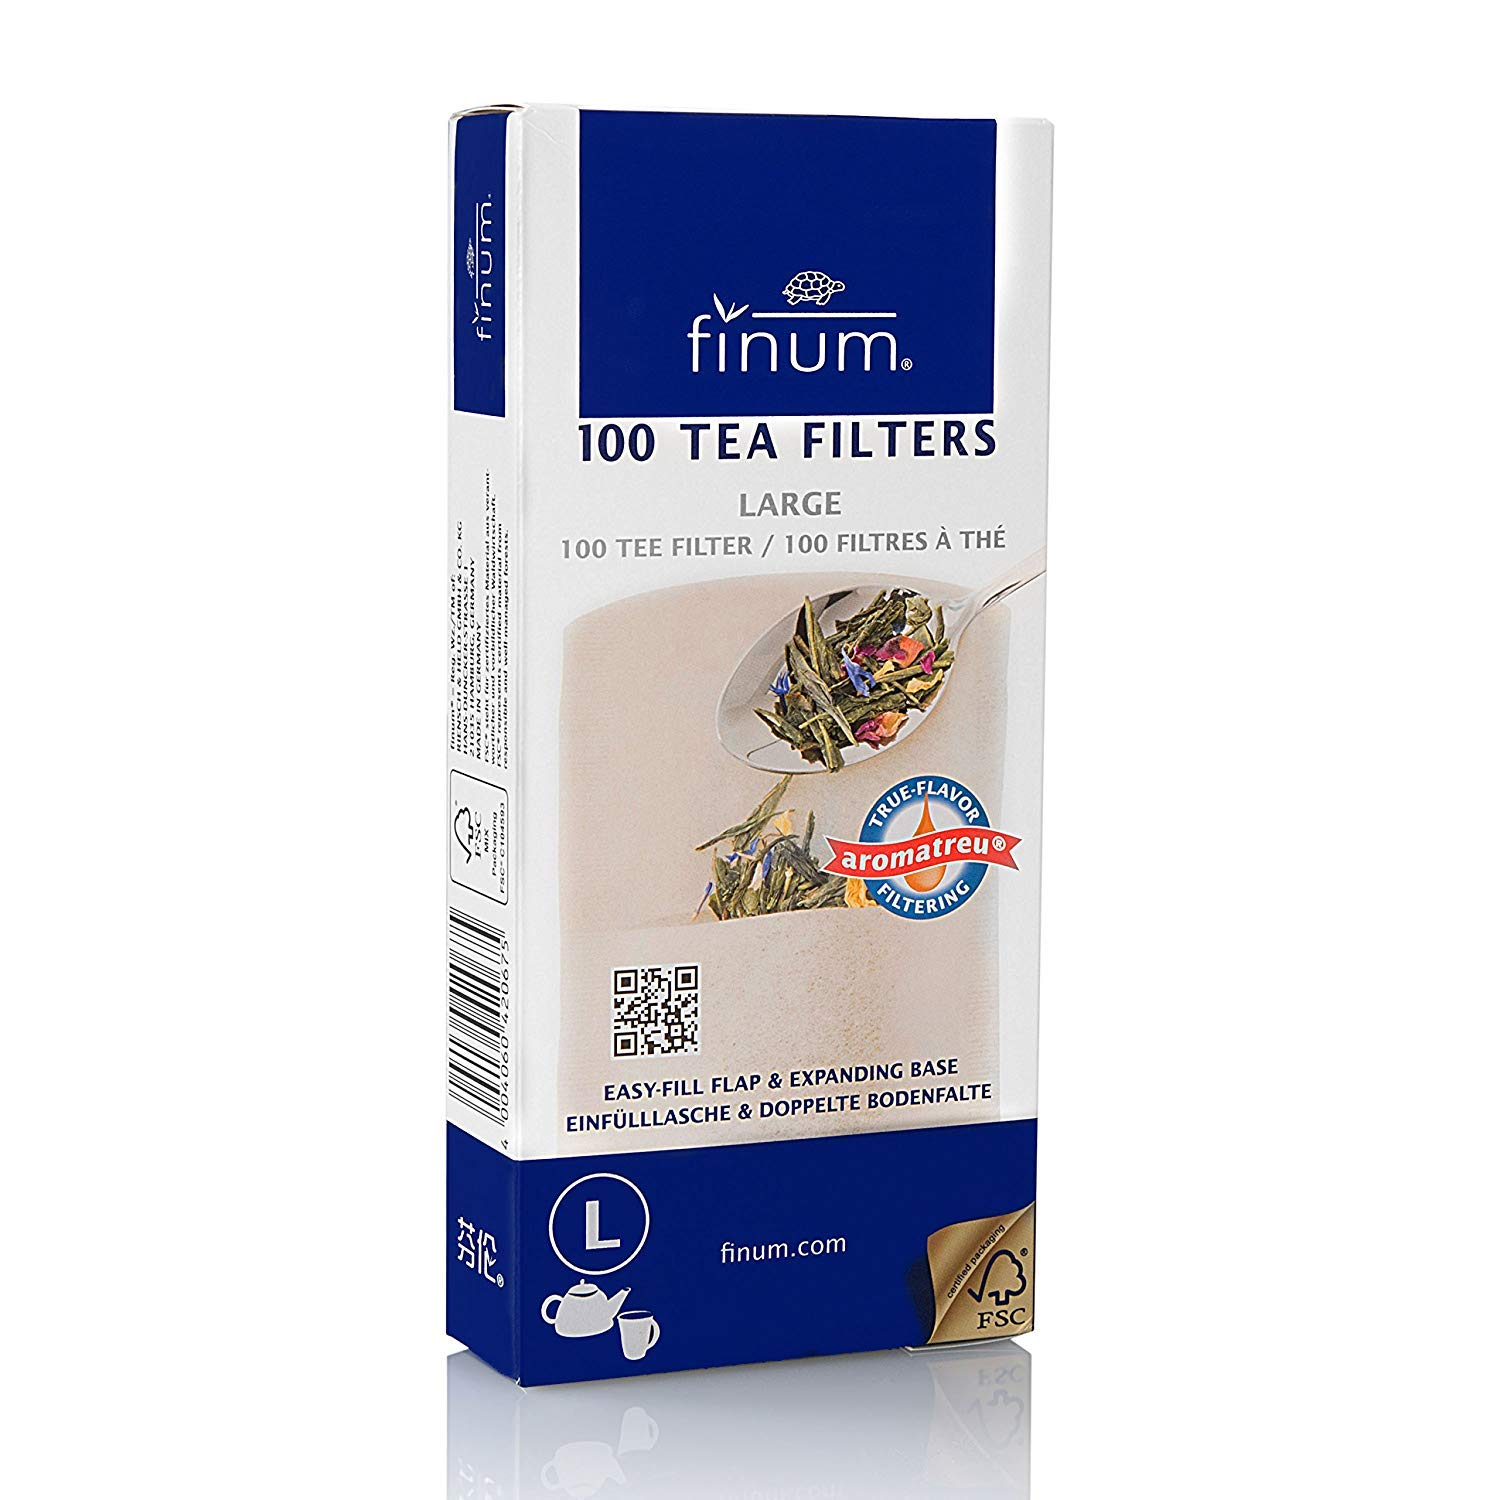 Finum Disposable Paper Tea Filter Bags for Loose Tea, Brown, Large, 100 Count (Pack of 24) by finum (Image #1)